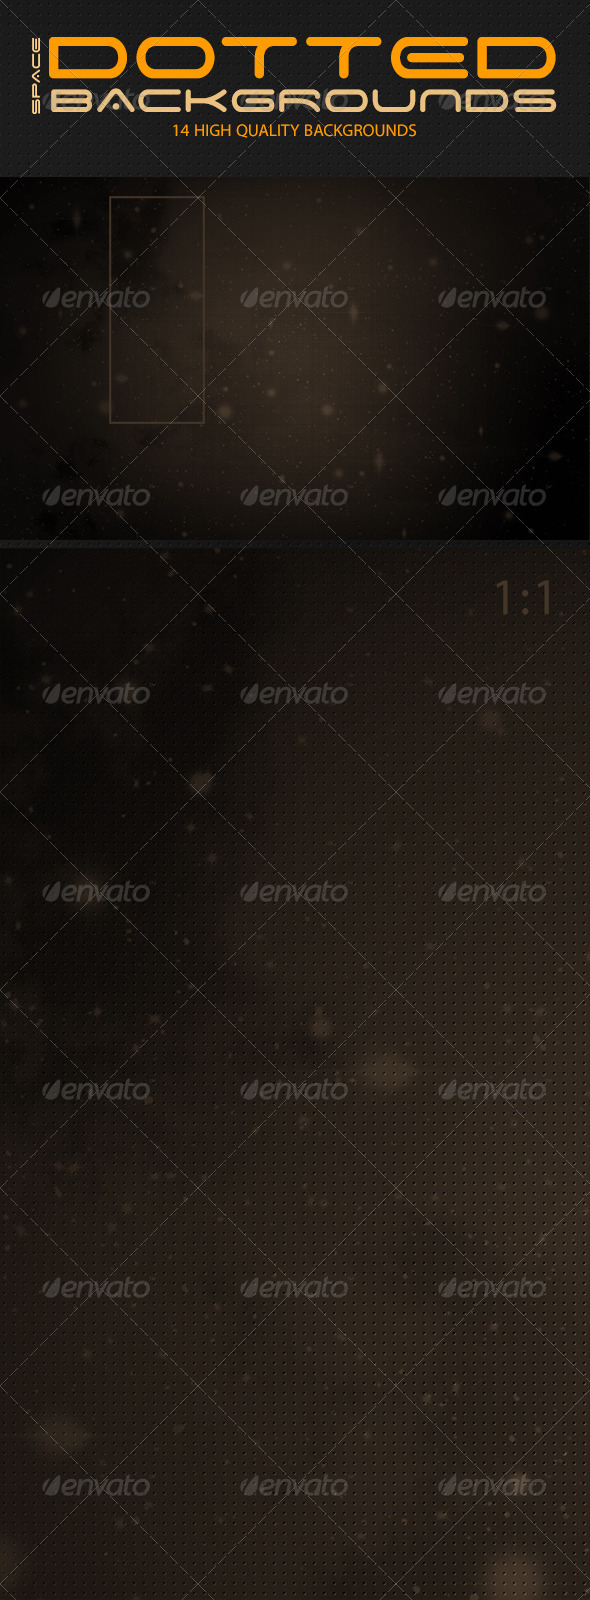 Dotted Space Backgrounds - Abstract Backgrounds